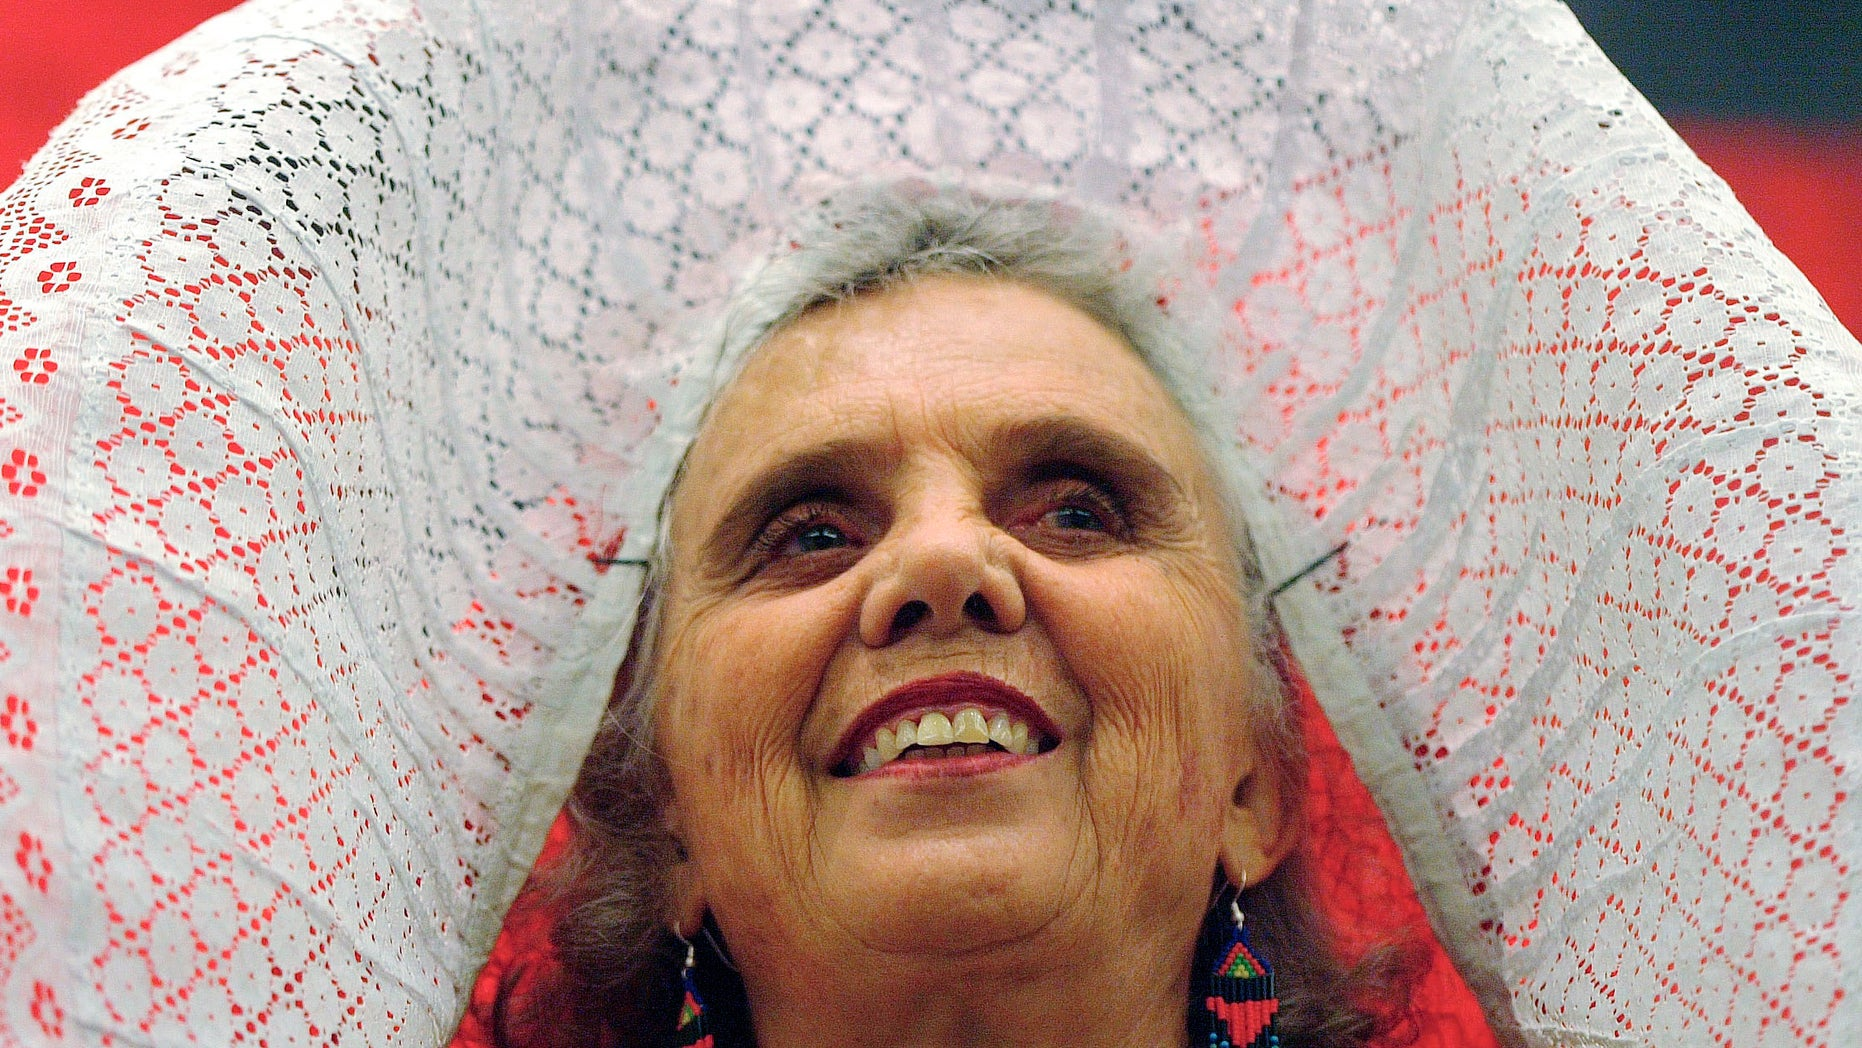 "FILE - In this Nov. 29 2005 file photo, Mexican author Elena Poniatowska, wearing a traditional tehuana outfit, smiles during the presentation of her new book ""El Tren Paso Primero"", ""The Train Passed First"", during the 19th Guadalajara International Book Fair in Guadalajara City, Mexico. Poniatowska has won the 2013 Cervantes Prize, the Spanish-speaking world's highest literary honor it was announced on Tuesday Nov. 19, 2013. The euro 125,000 prize generally alternates between Spanish and Latin American writers. Previous winners include Carlos Fuentes of Mexico, and Nobel prize winners Mario Vargas Llosa of Peru and Spain's late Camilo Jose Cela. They are presented each April 23, the anniversary of the death of Miguel de Cervantes, author of ""Don Quijote."" (AP Photo/Guillermo Arias, File)"